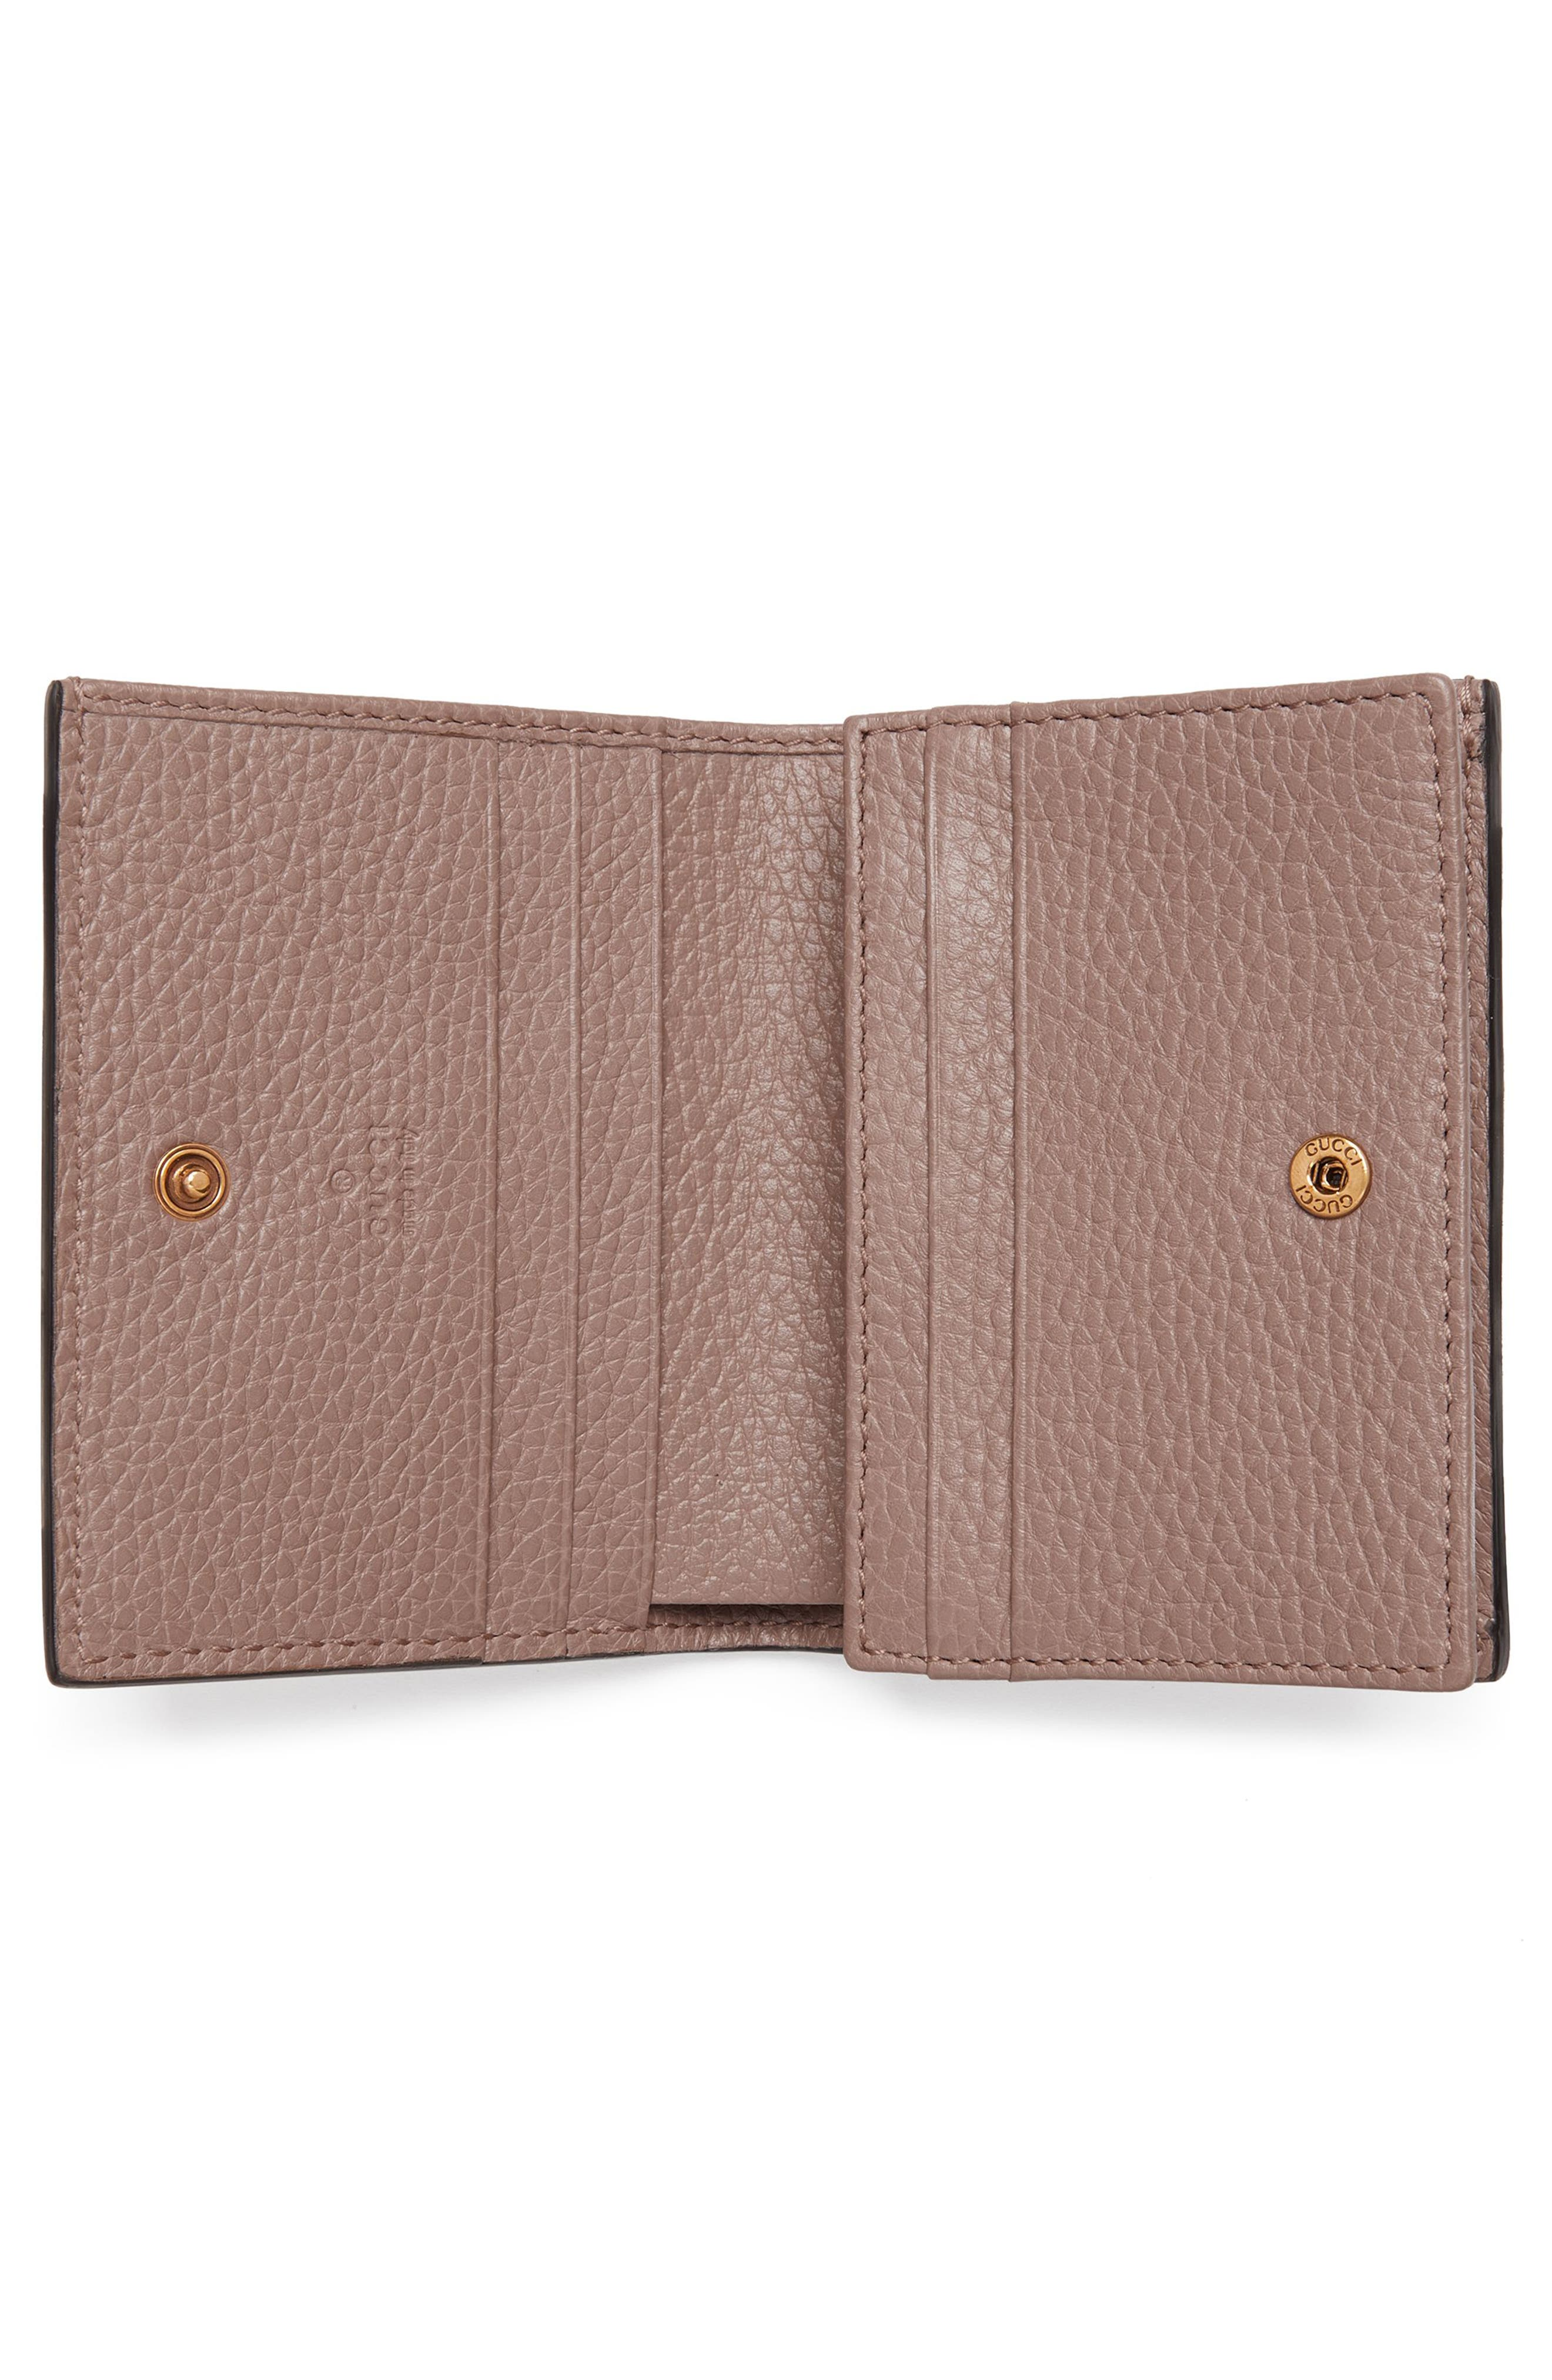 Animalier Bee Leather Card Case,                             Alternate thumbnail 2, color,                             PORCELAIN ROSE